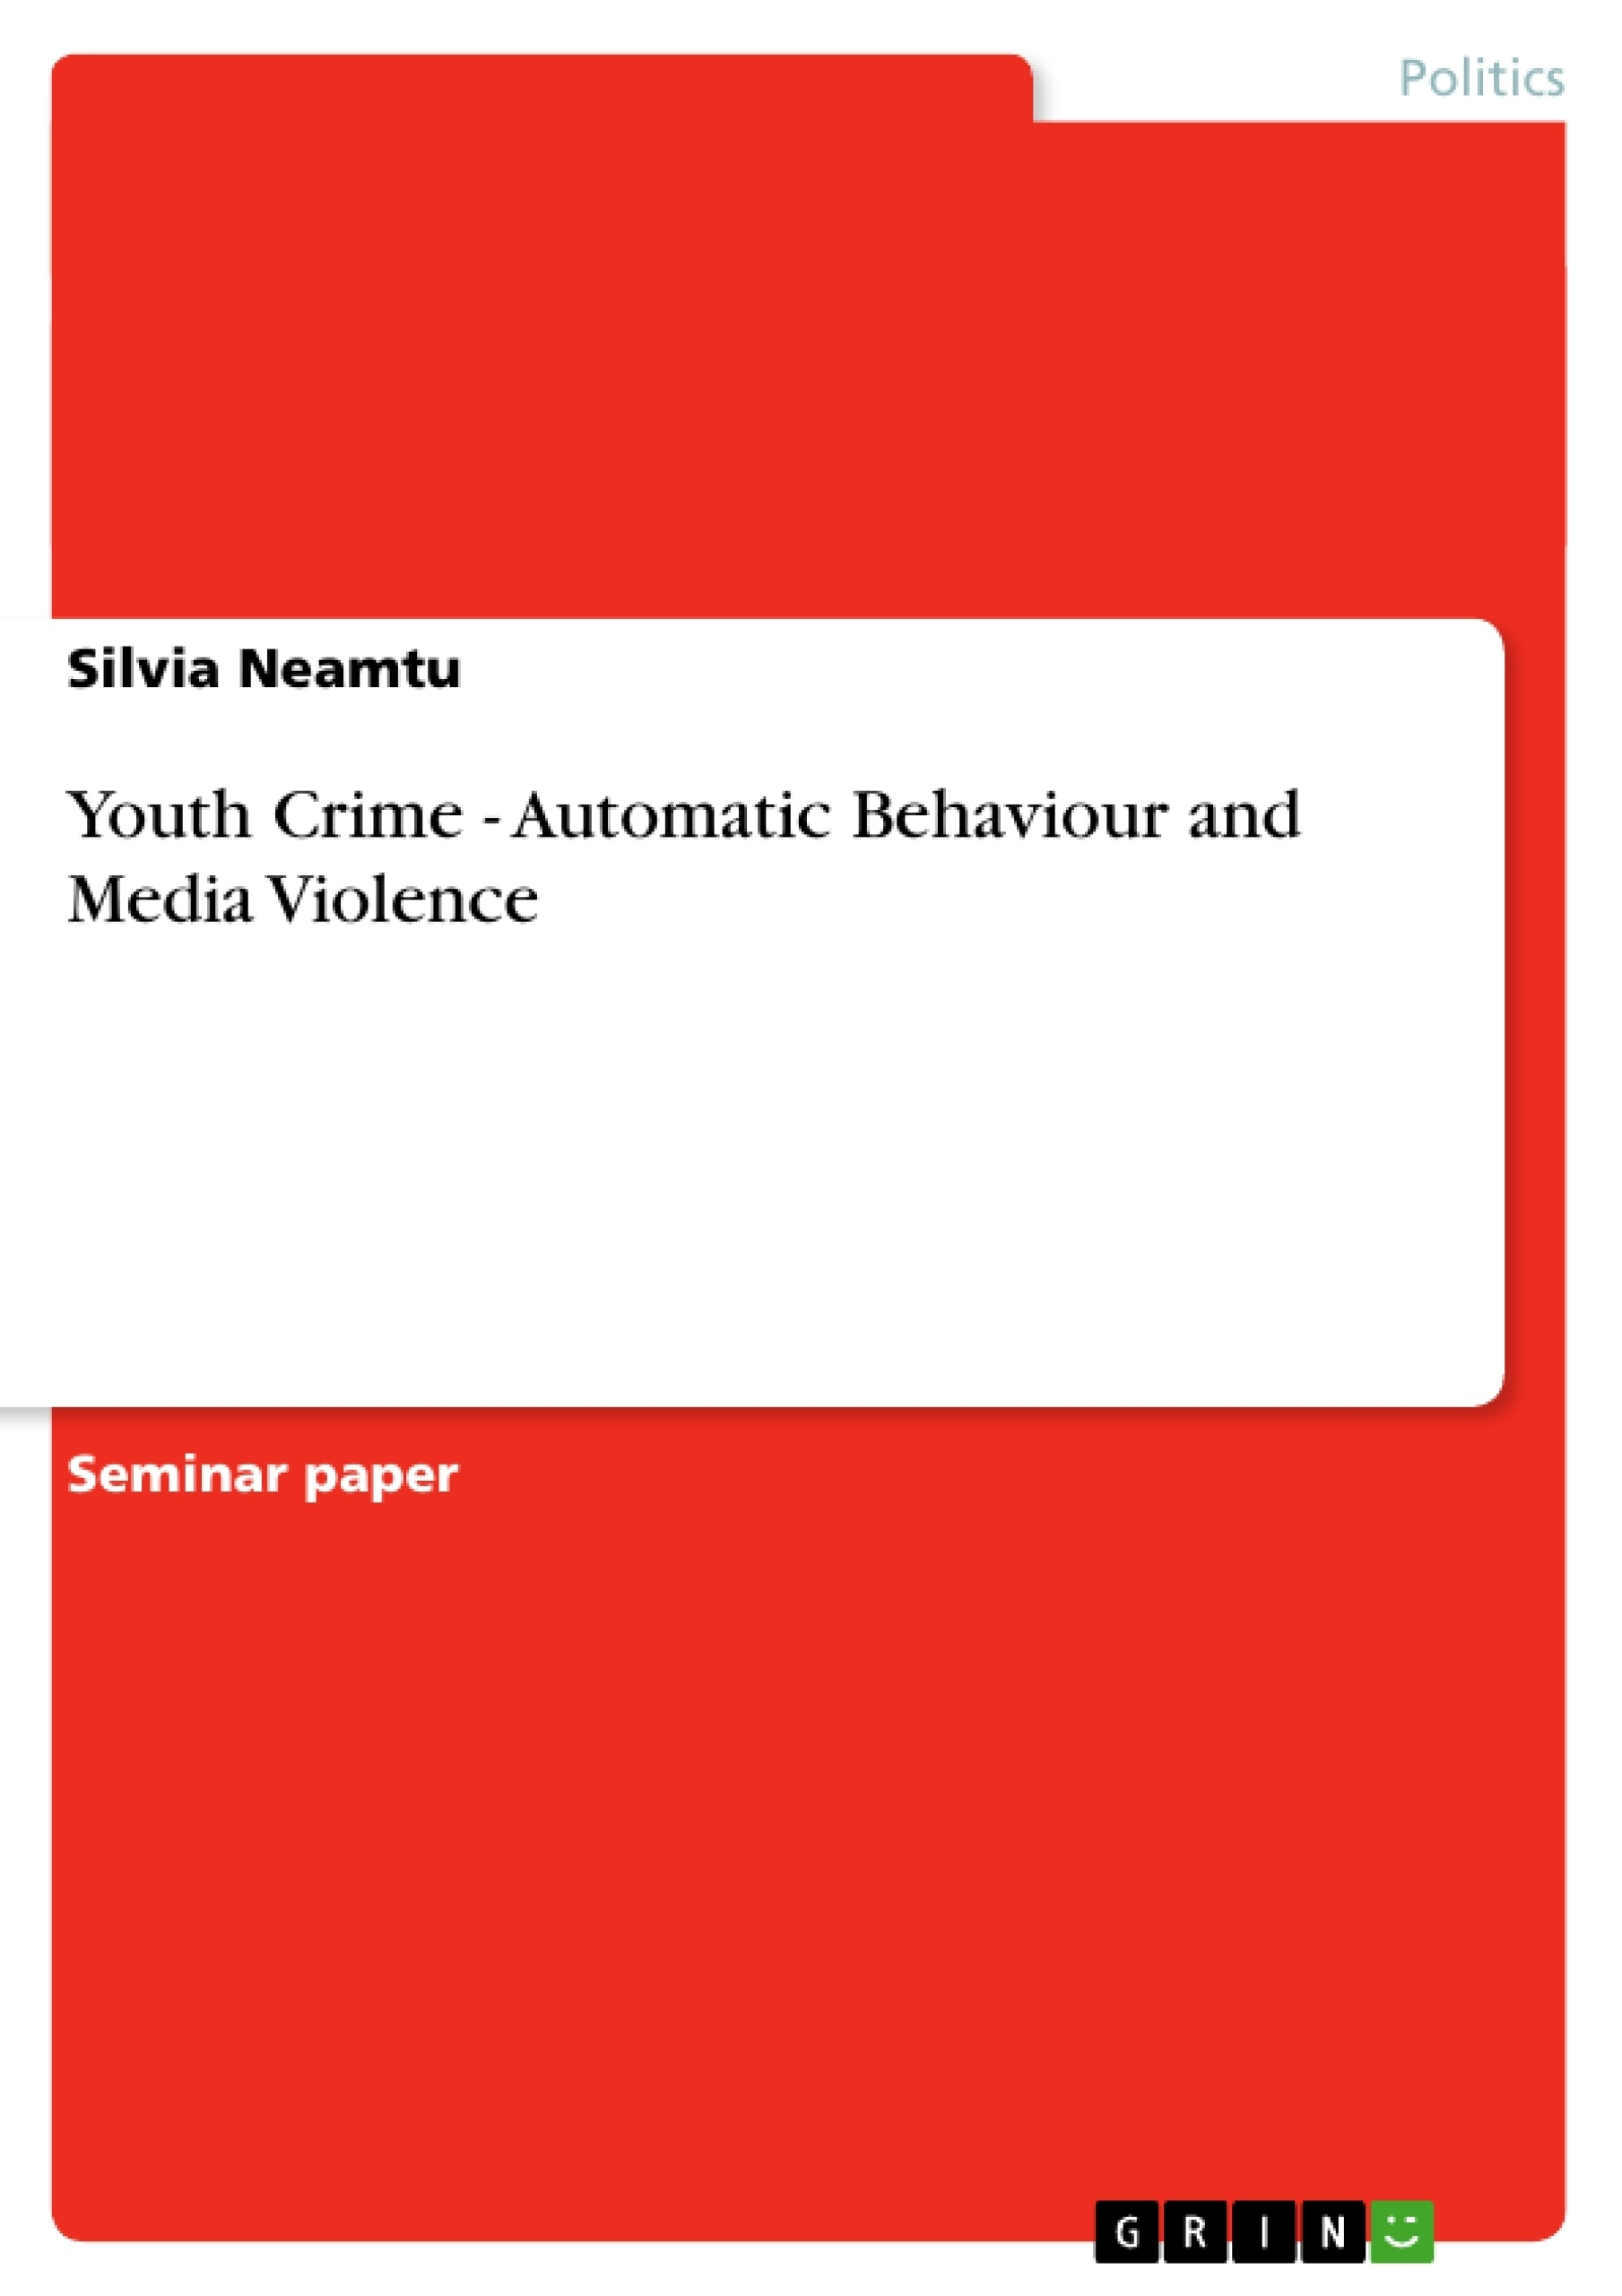 Title: Youth Crime - Automatic Behaviour and Media Violence